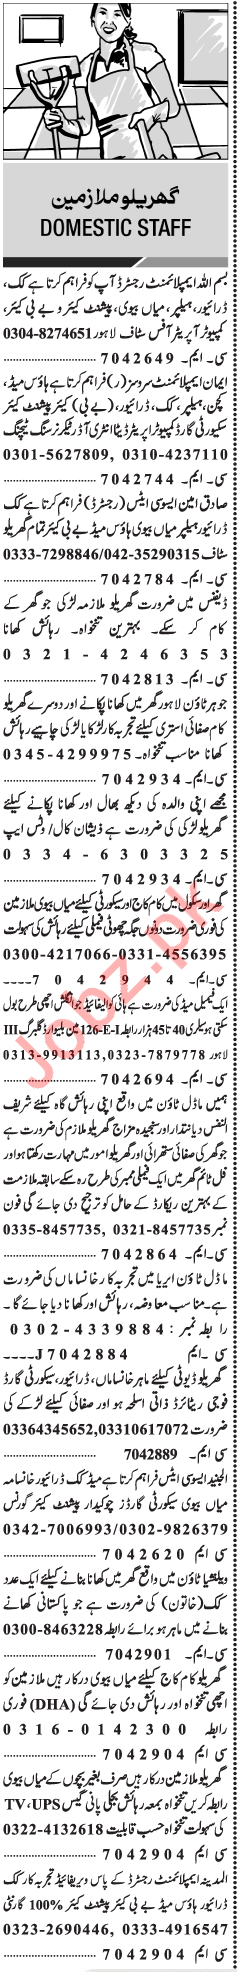 House Staff Jobs Open in Lahore